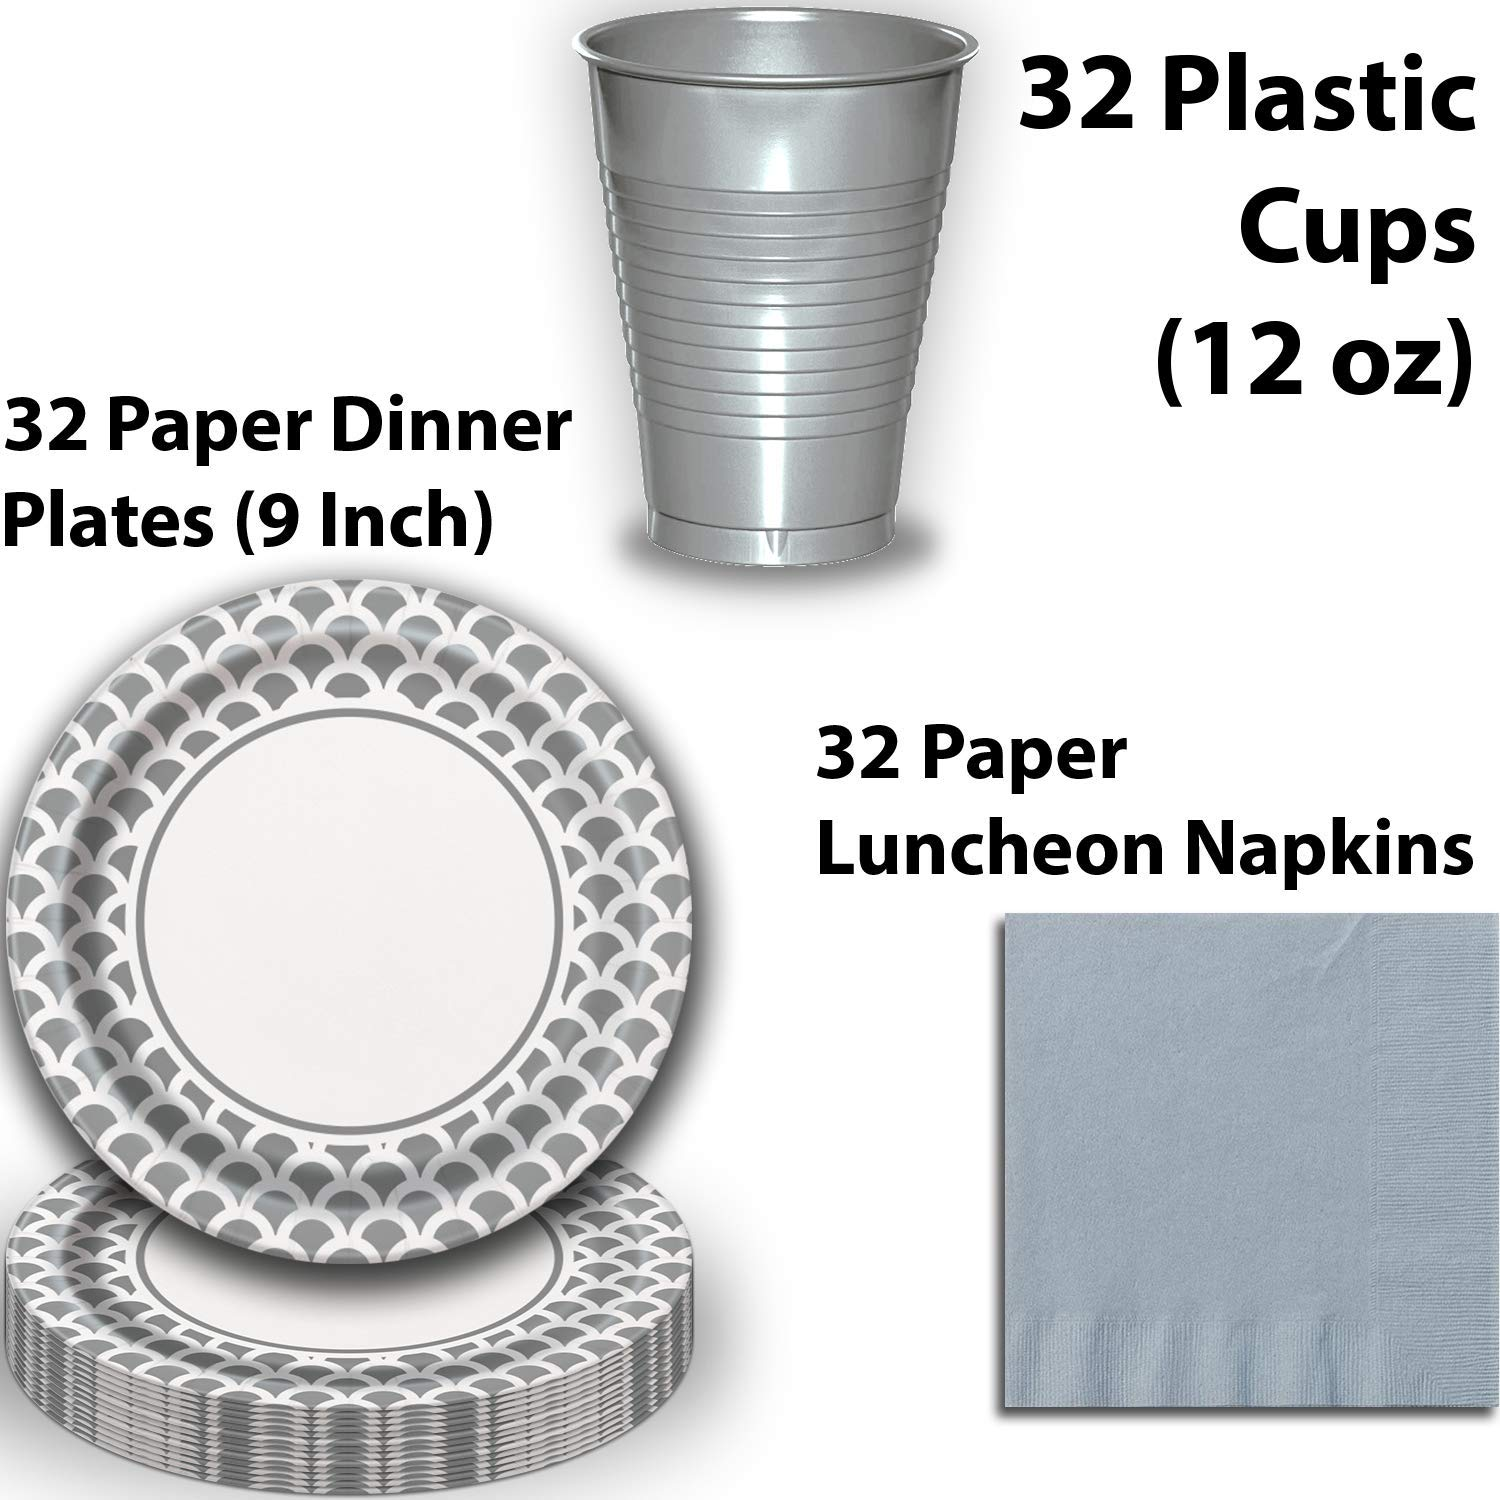 Disposable Tableware, 32 Sets - Silver and Caribbean Teal - Scallop Dinner Plates, Chevron Dessert Plates, Cups, Lunch Napkins, Cutlery, and Tablecloths: Premium Quality Party Supplies Set by HeroFiber (Image #3)